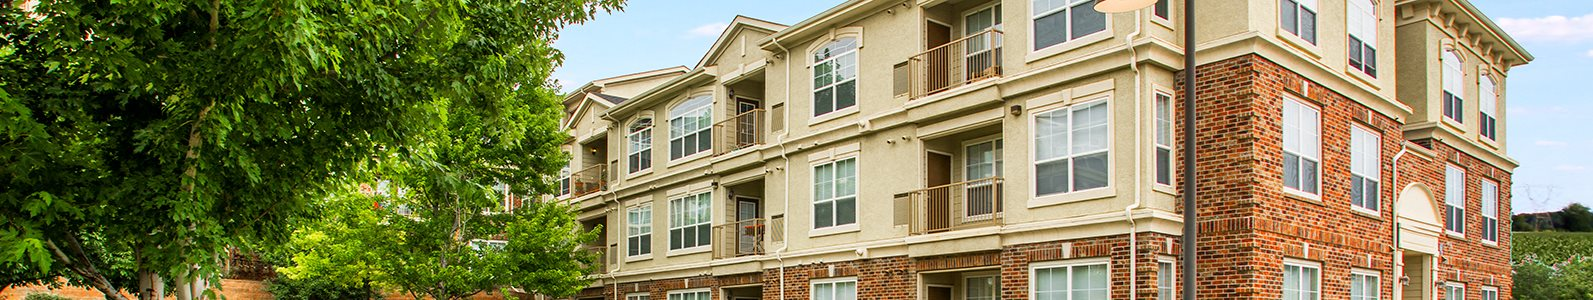 Retreat at City Center apartments for rent in Aurora, CO